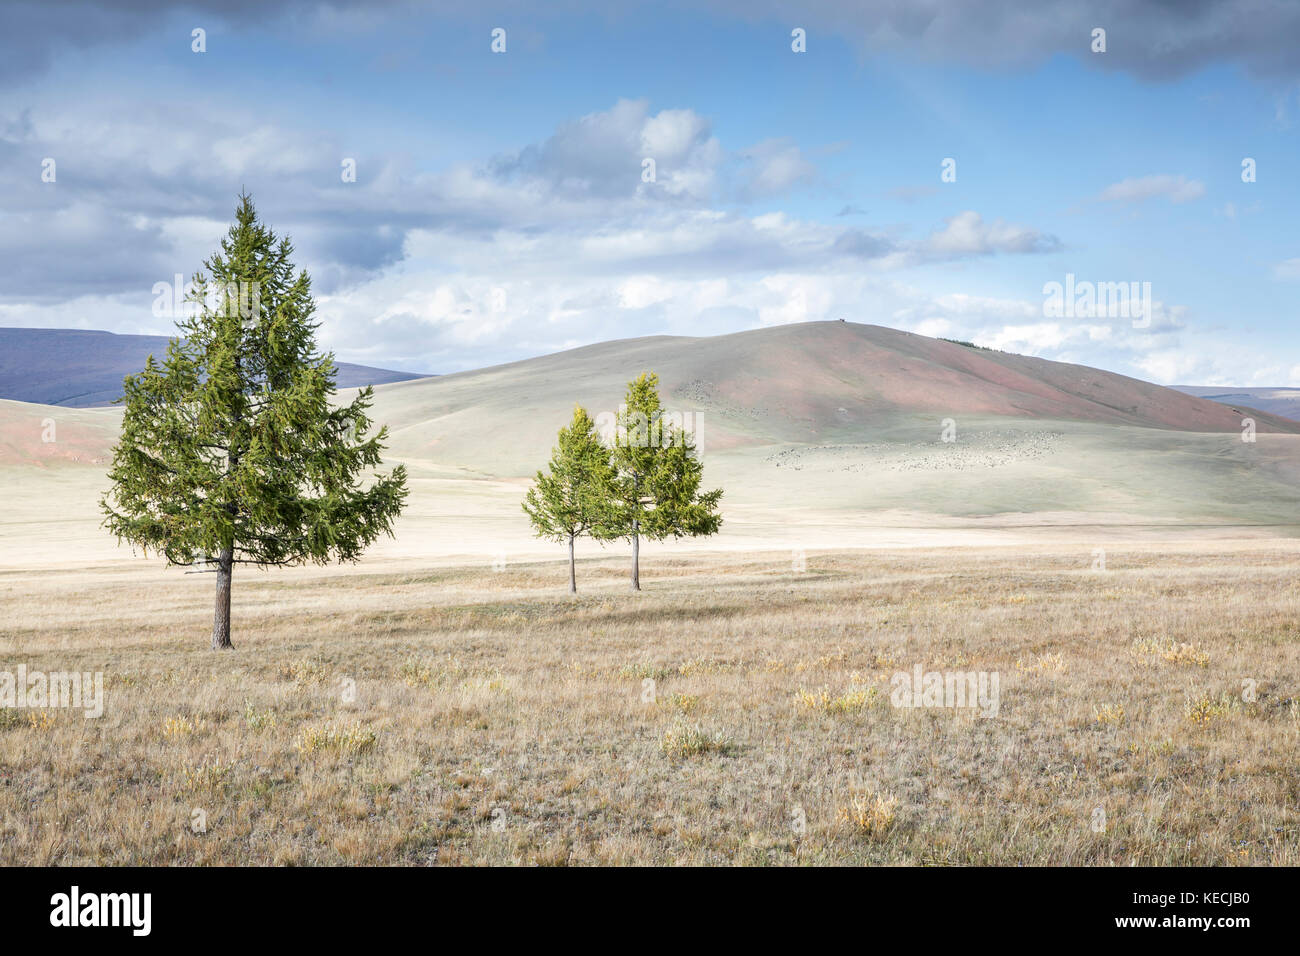 trees in a northern Mongolian landscape - Stock Image